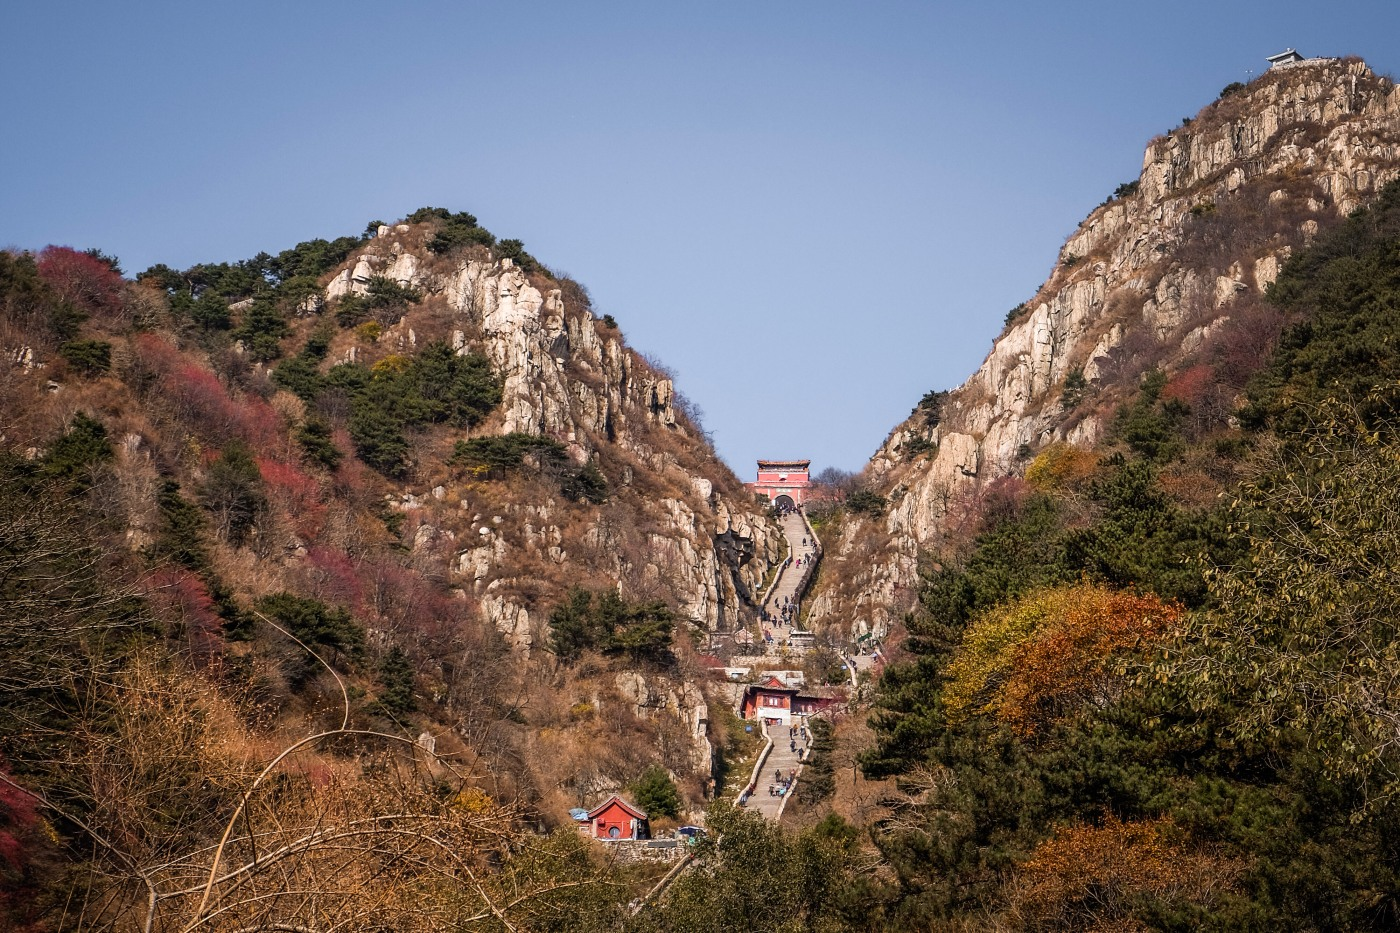 Climbing the 8000 stairs of Taishan